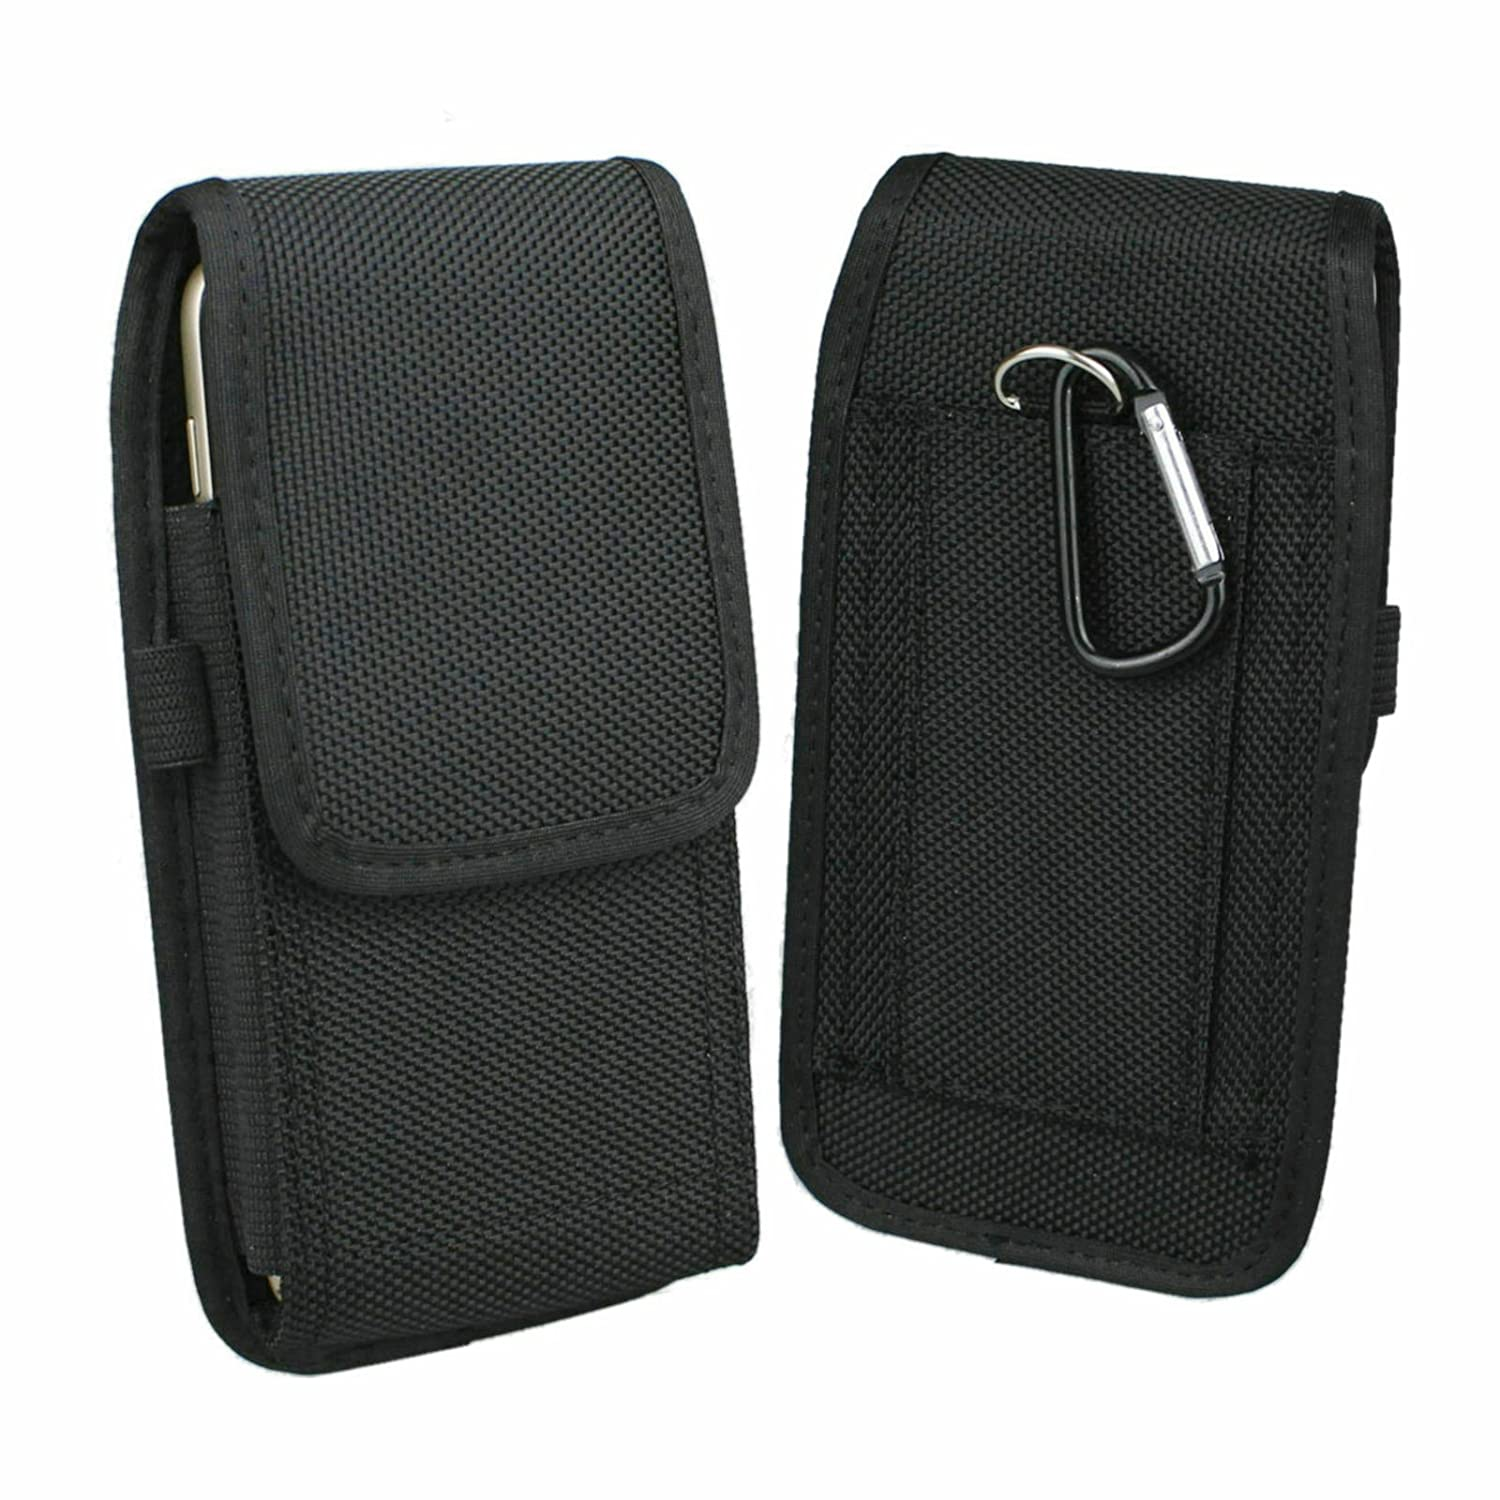 Aubaddy Vertical Nylon Holster Pouch with Belt Loop for iPhone X, iPhone Xs, Samsung Galaxy S8, Galaxy S9, Huawei P20, P20 Lite - Fit with a Thin Case (Black)